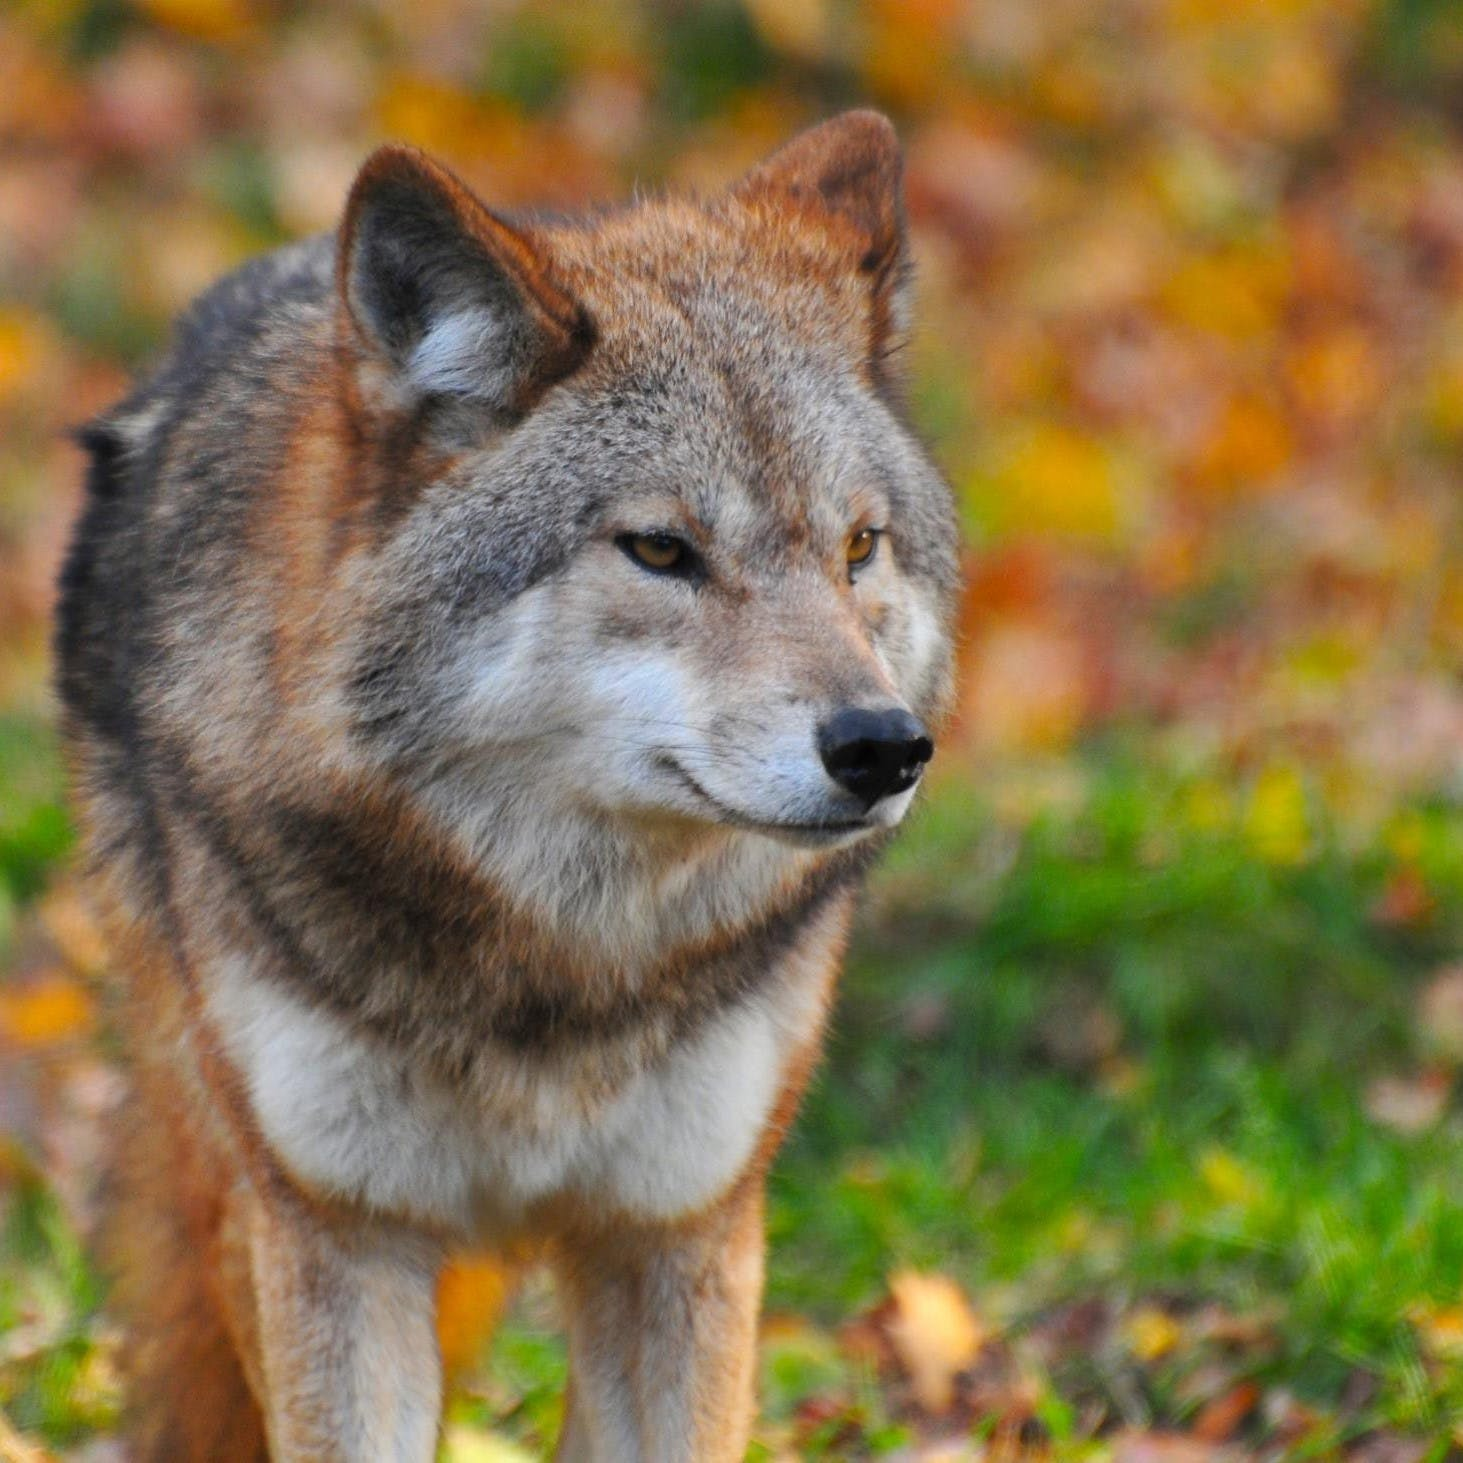 A wolf in a forest staring into the distance. Tracking wolves is a popular pursuit in nature based tourism.